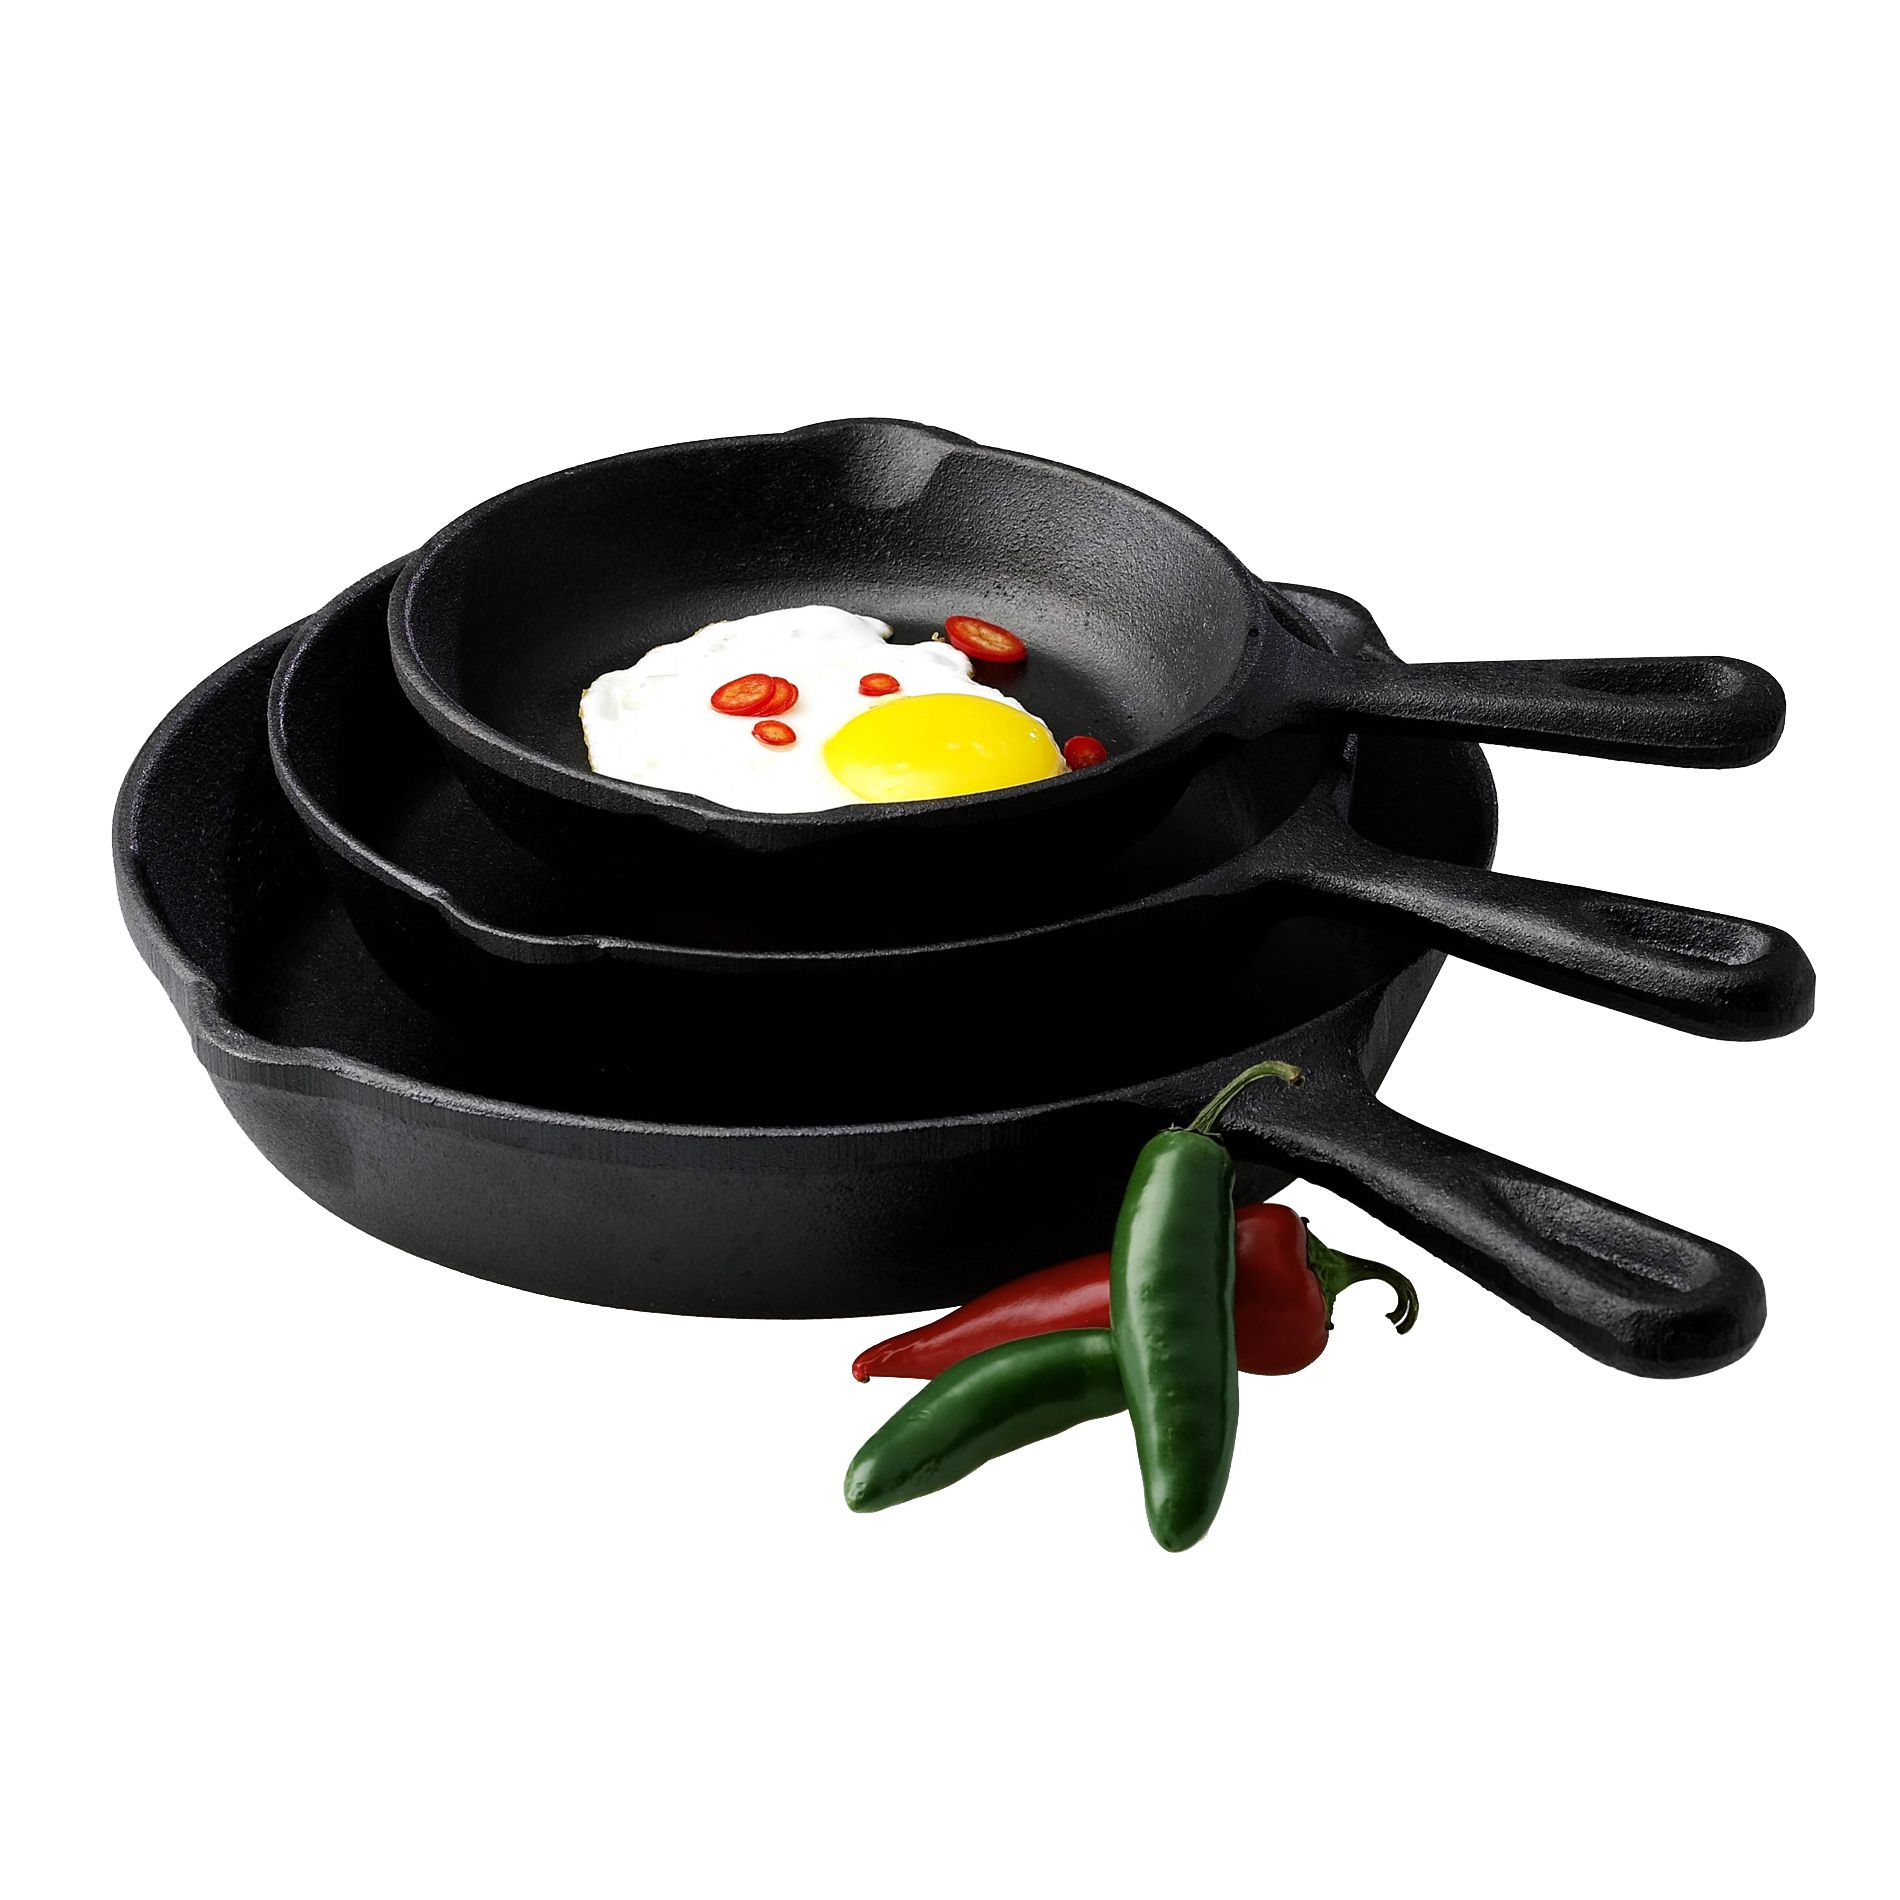 Basic Essentials  3Pc Cast Iron Fry Pan Set